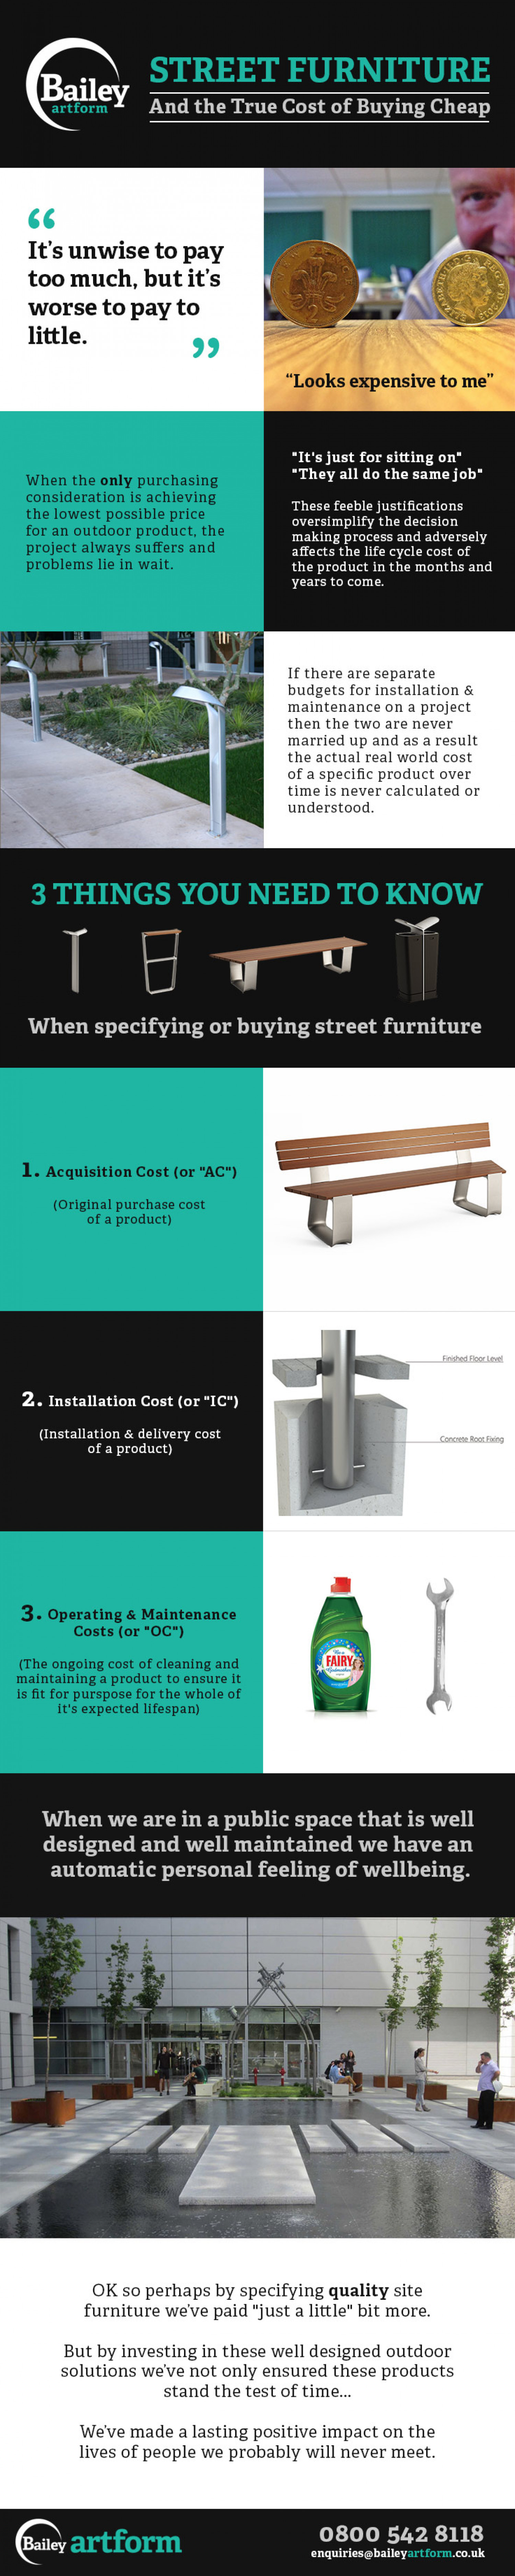 Street Furniture and the True Cost of Buying Cheap Infographic